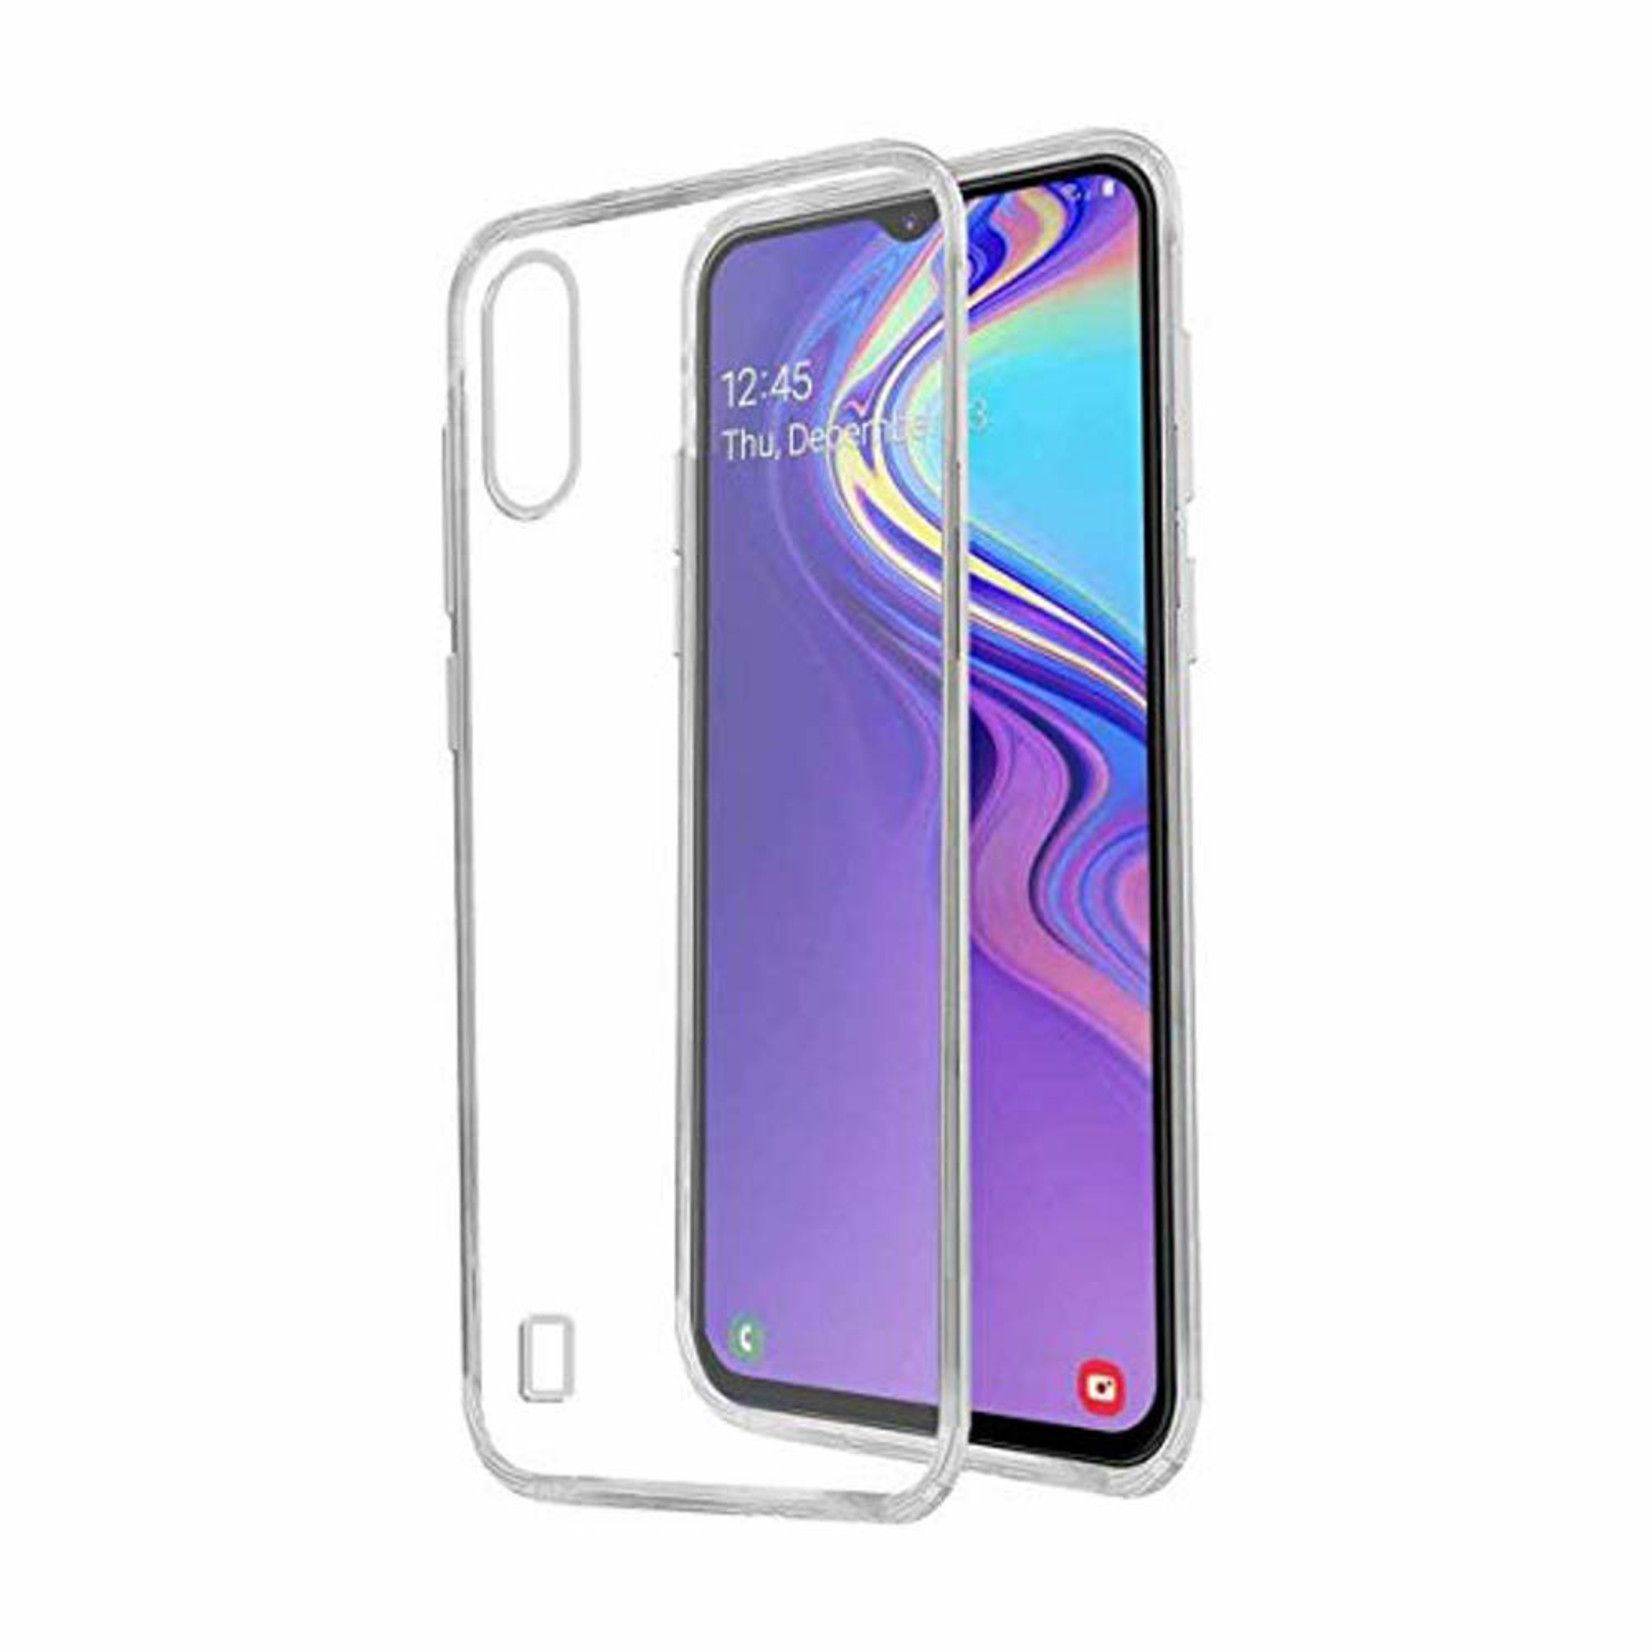 Colorfone Hoesje Coolskin3T voor Samsung M10 Transparant Wit